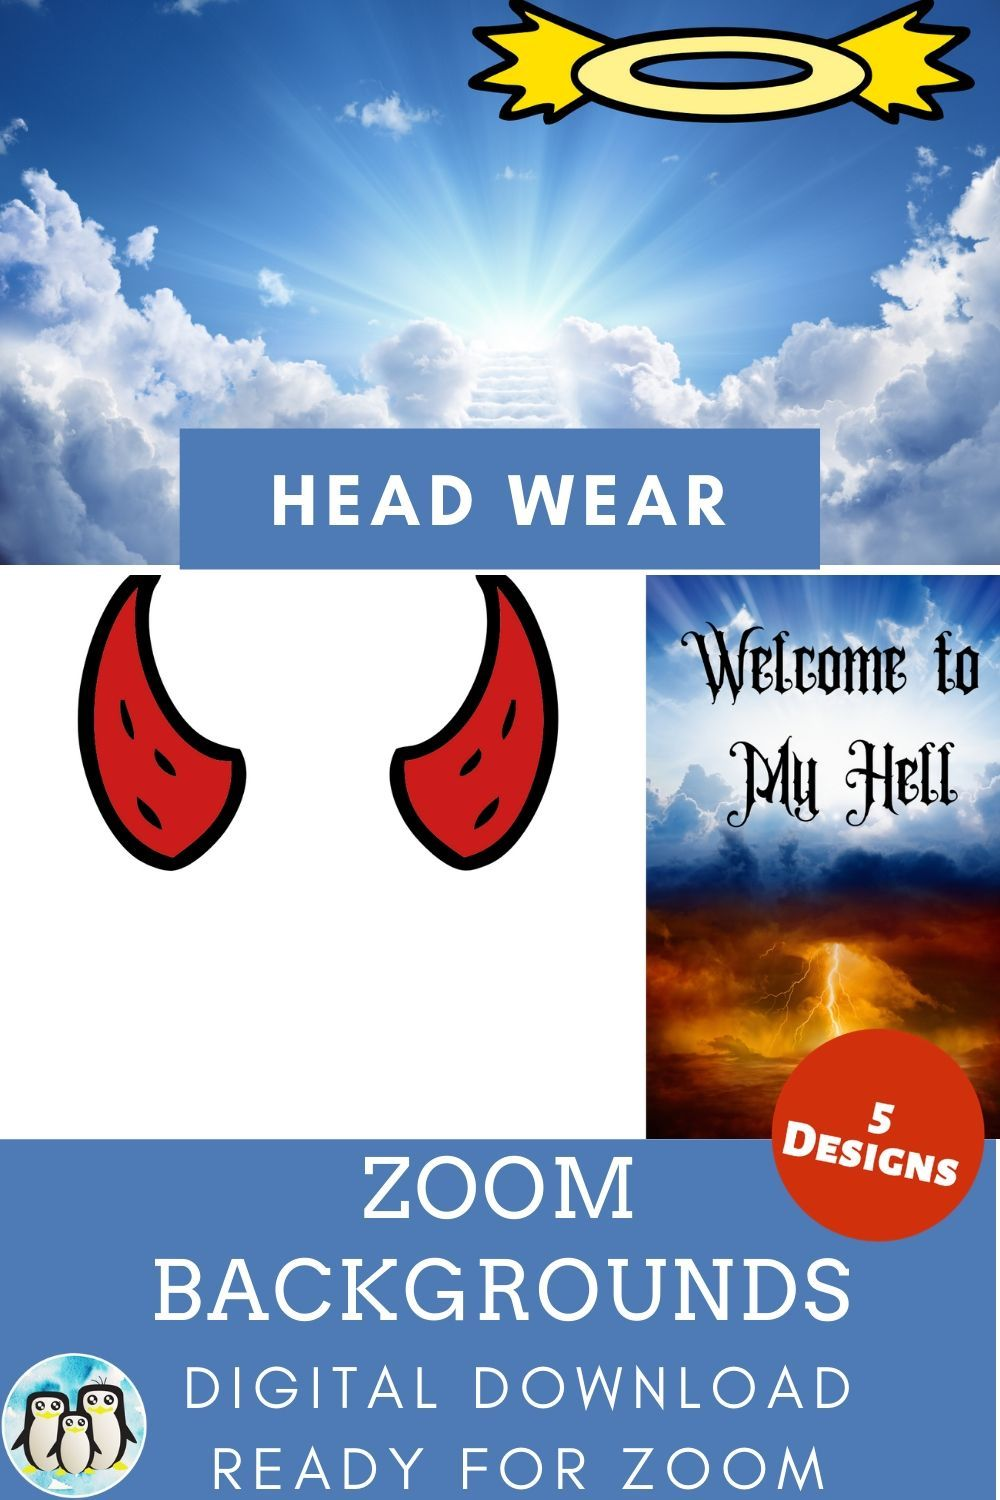 Zoom Backgrounds Of 5 Different Head Wear Images Cute Gifts For Friends Fun Call Background